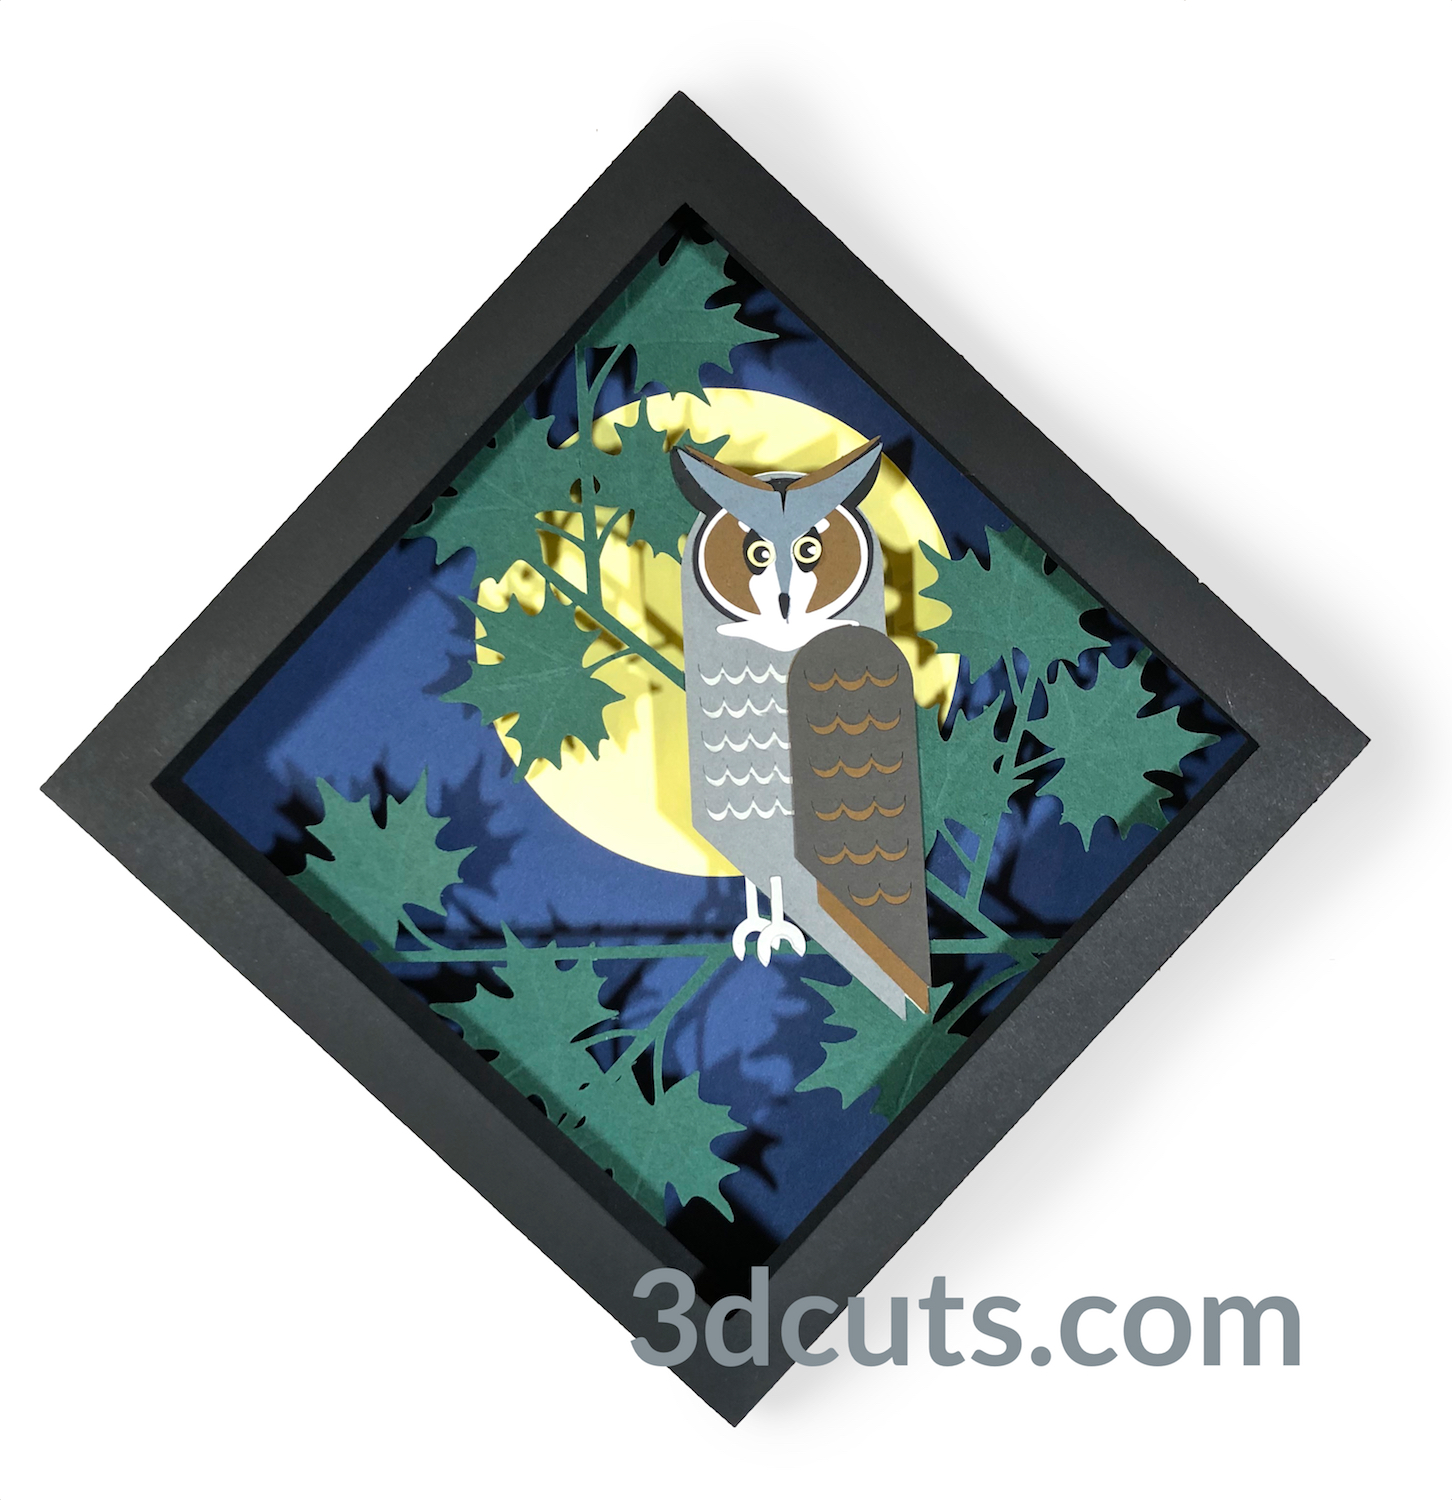 The Owl Series by 3DCuts.com, Marji Roy, 3D cutting files in .svg, .dxf, and .pdf formats for use with Silhouette, Cricut and other cutting machines.